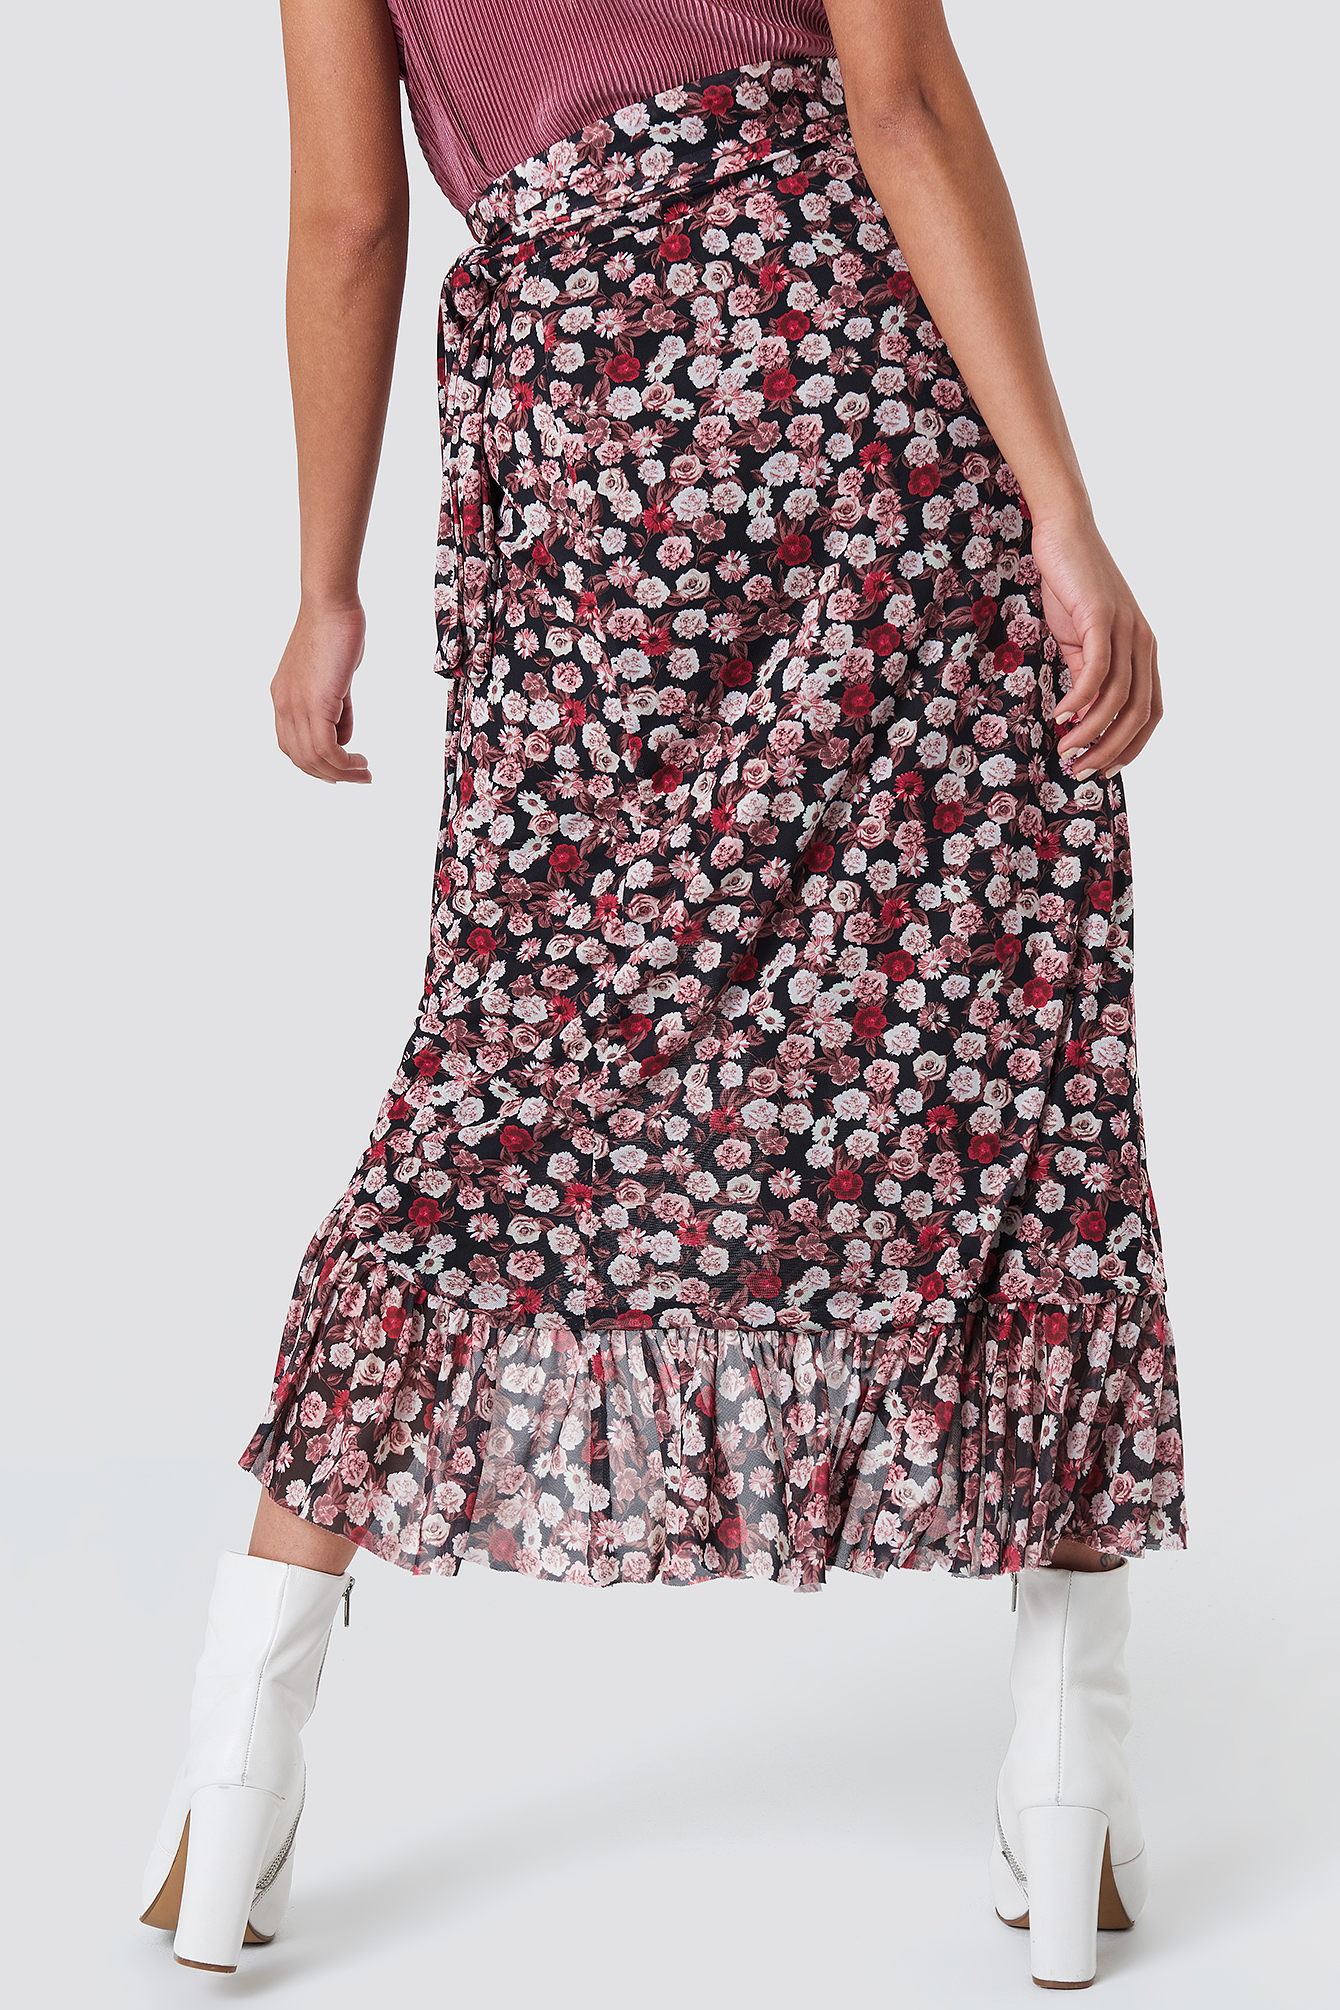 358cff5624c Skirt With Red Flowers | Gardening: Flower and Vegetables